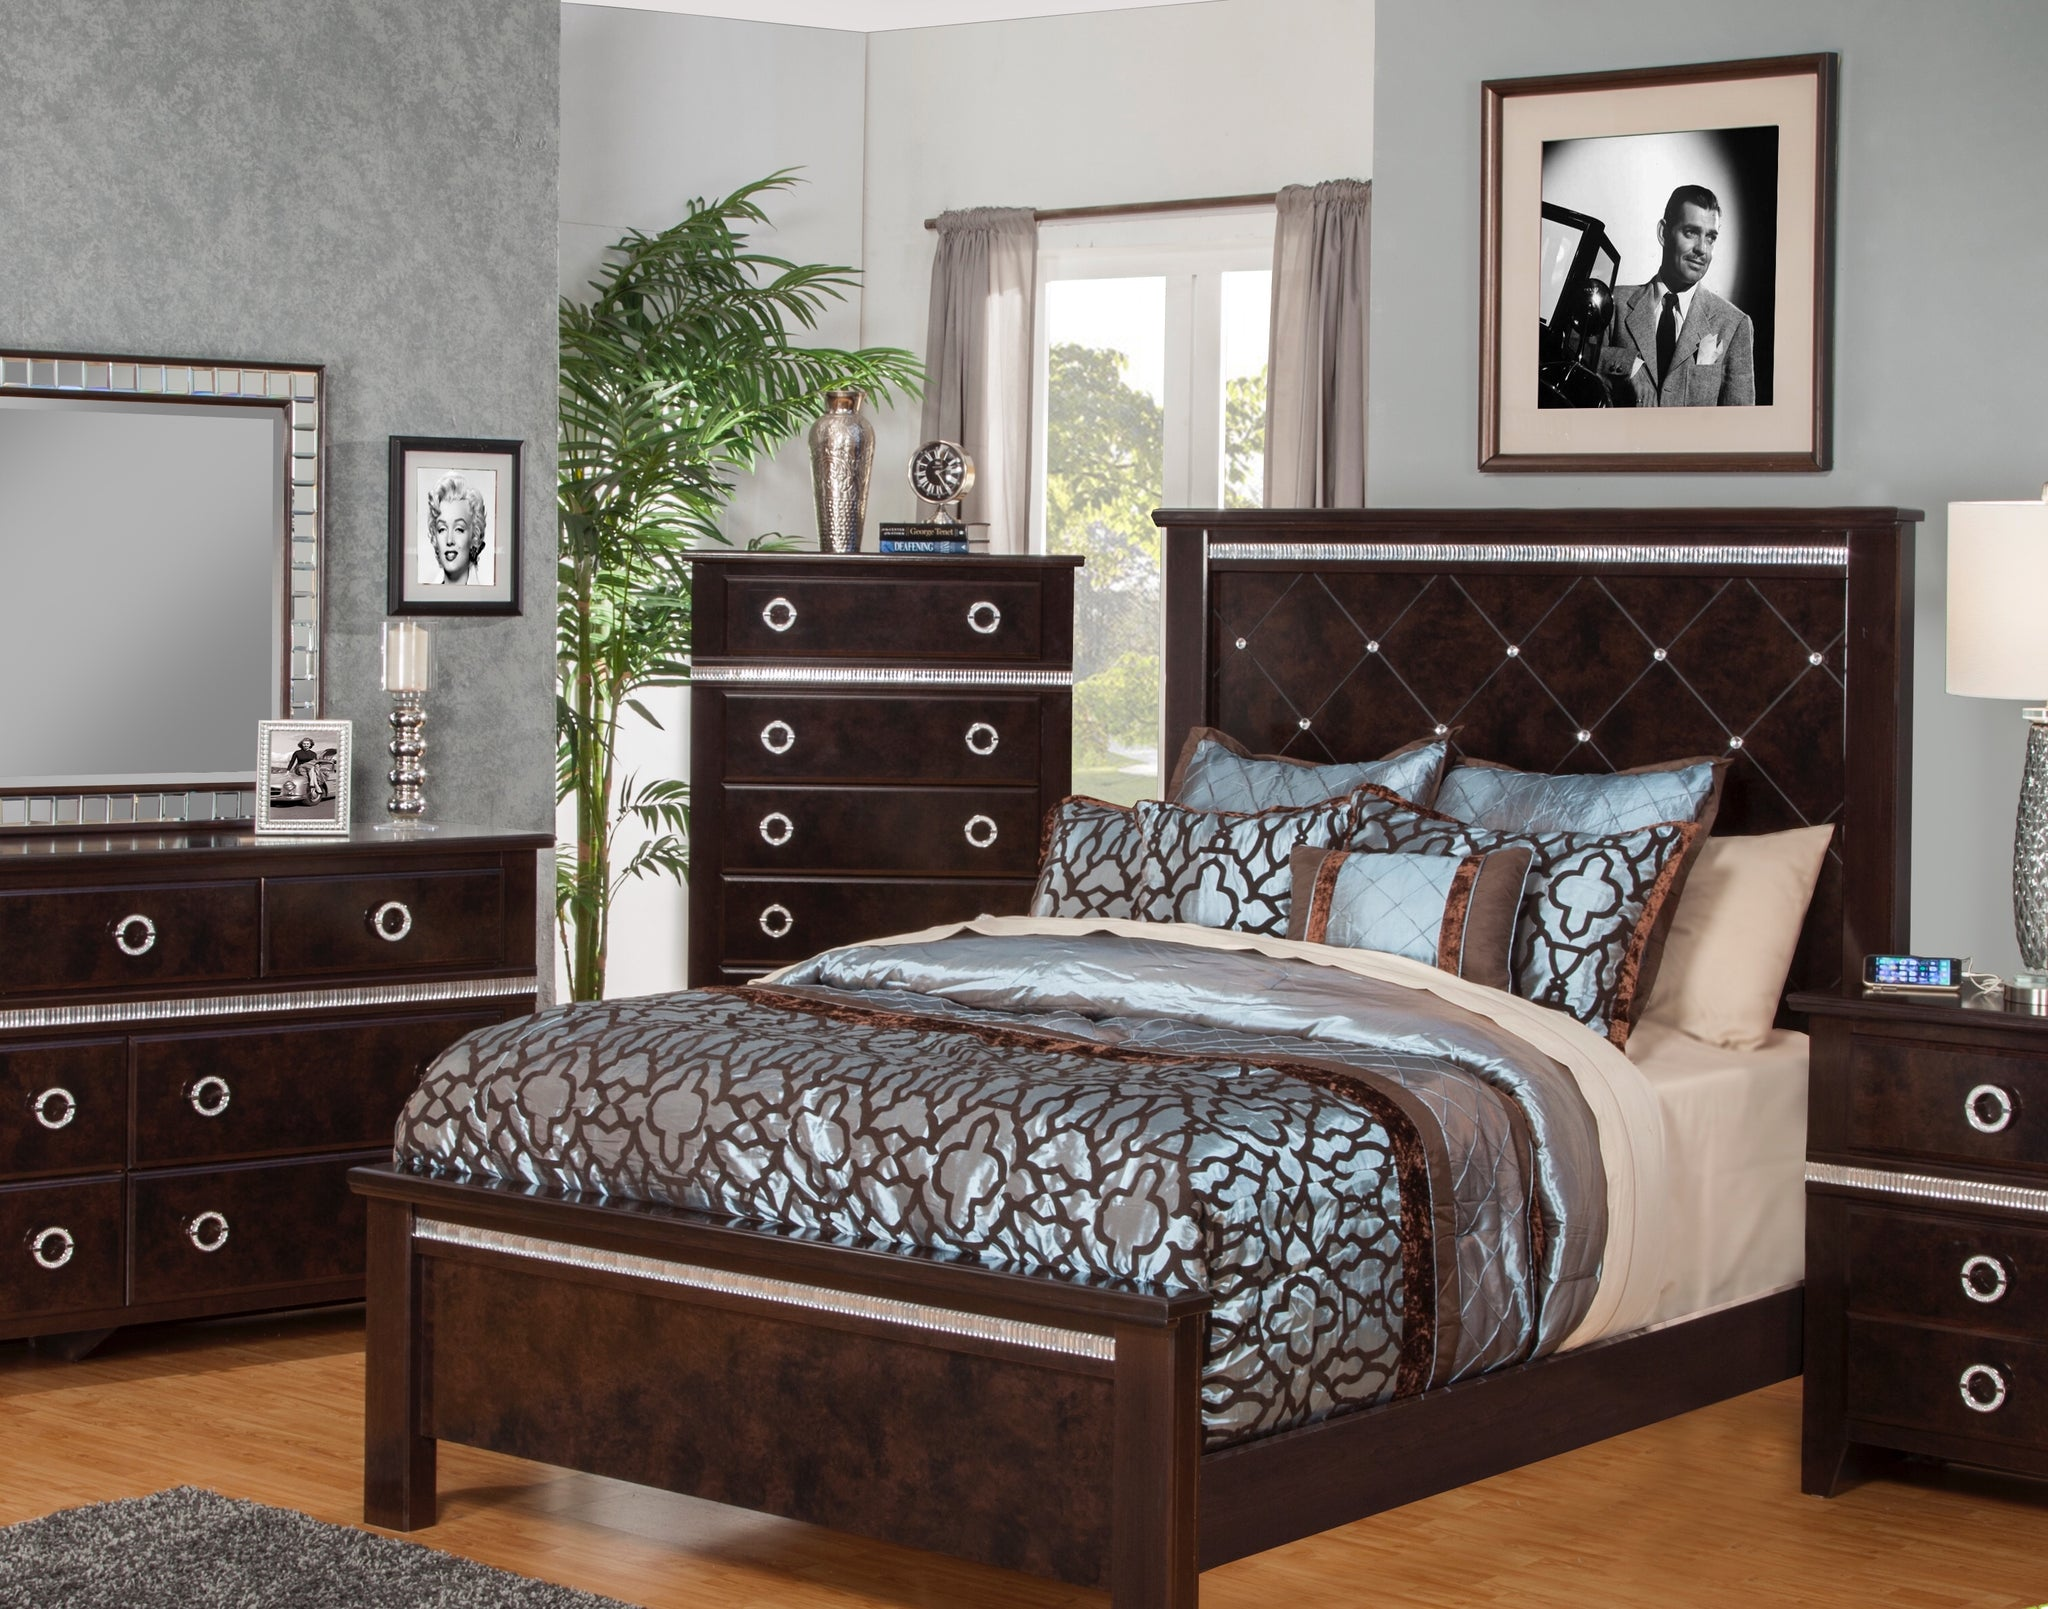 Carson 3pc Bedroom Set - HD Furniture